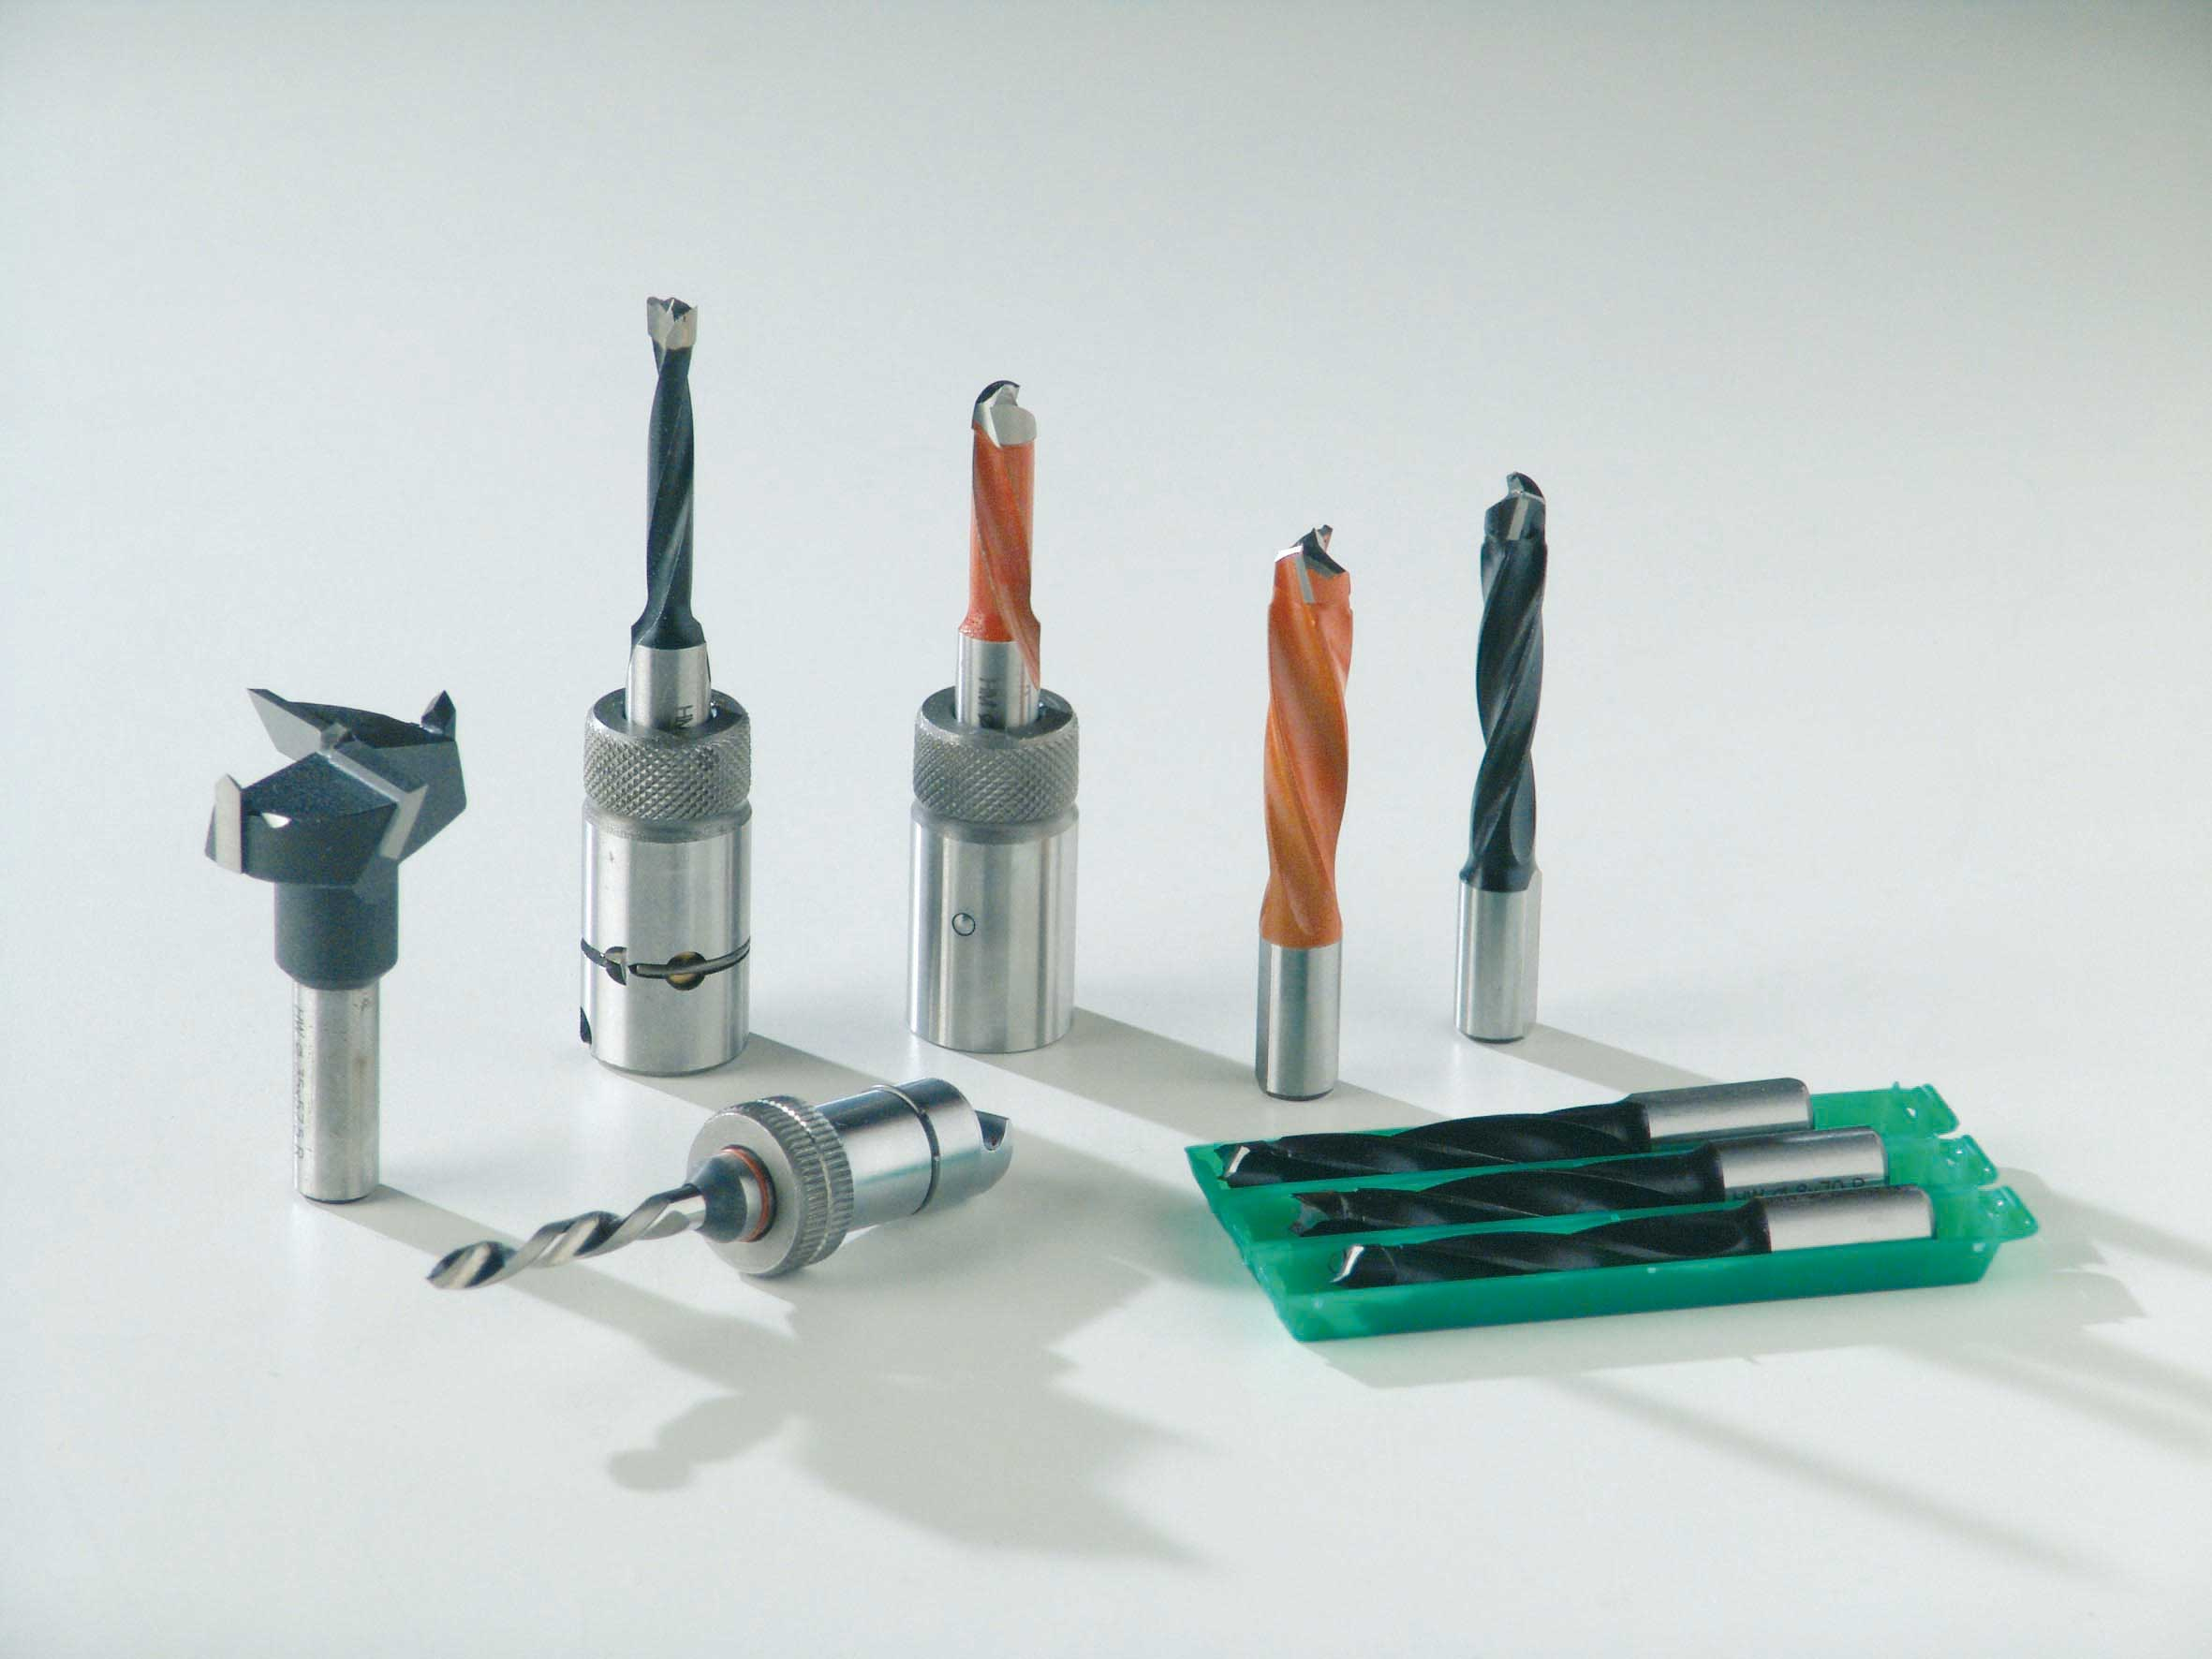 drilling bits, automatic boring machines, boring bits, hinges bits, boring router